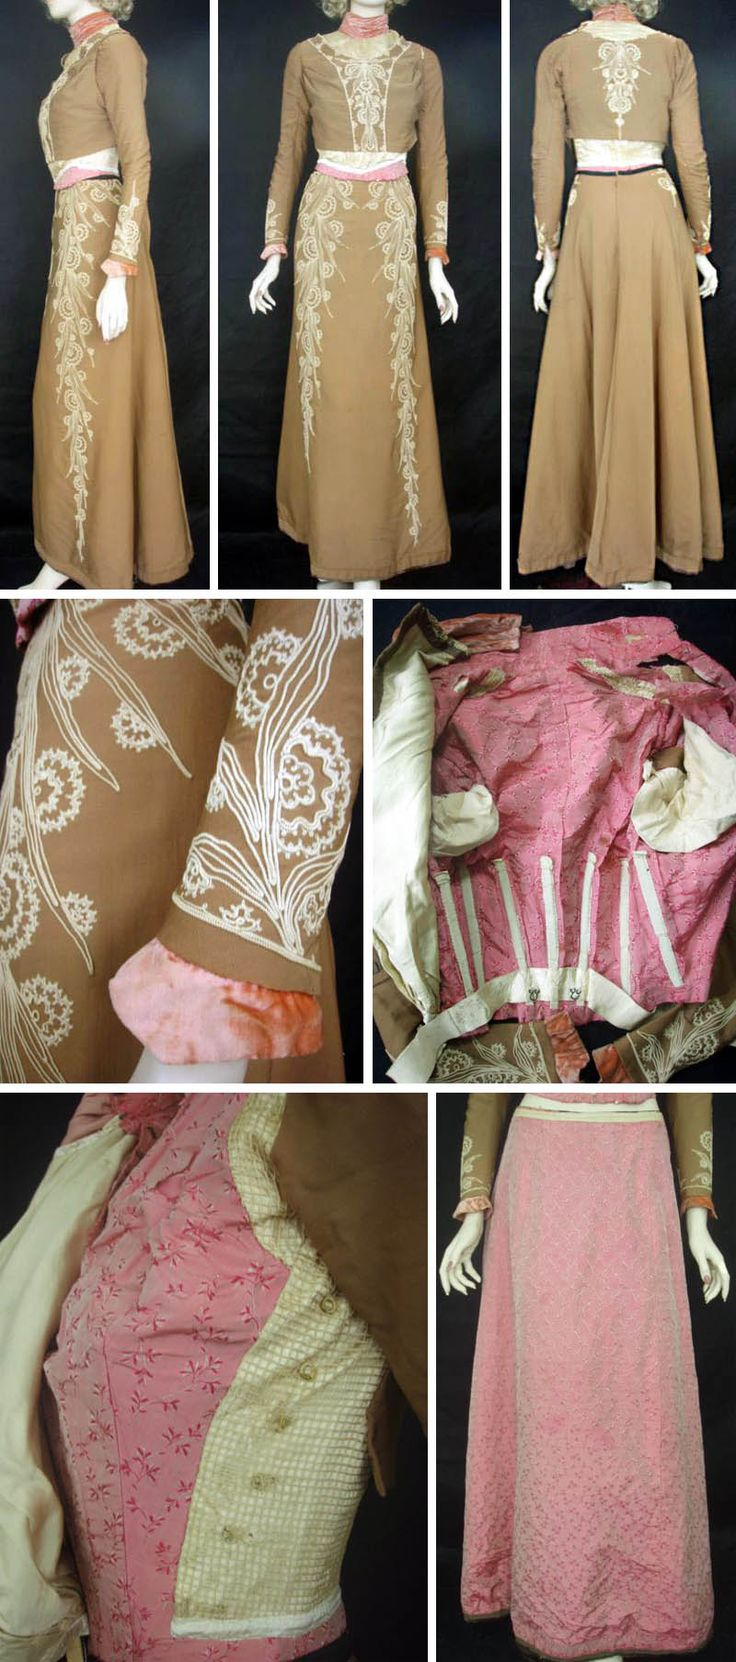 Dress of fine brown wool with cream embroidery and cord work, 1900. Two pieces, both with bright pink floral silk taffeta lining. Bodice also has layer of ivory net with silk satin backing and a velvet collar. Antique Clothier